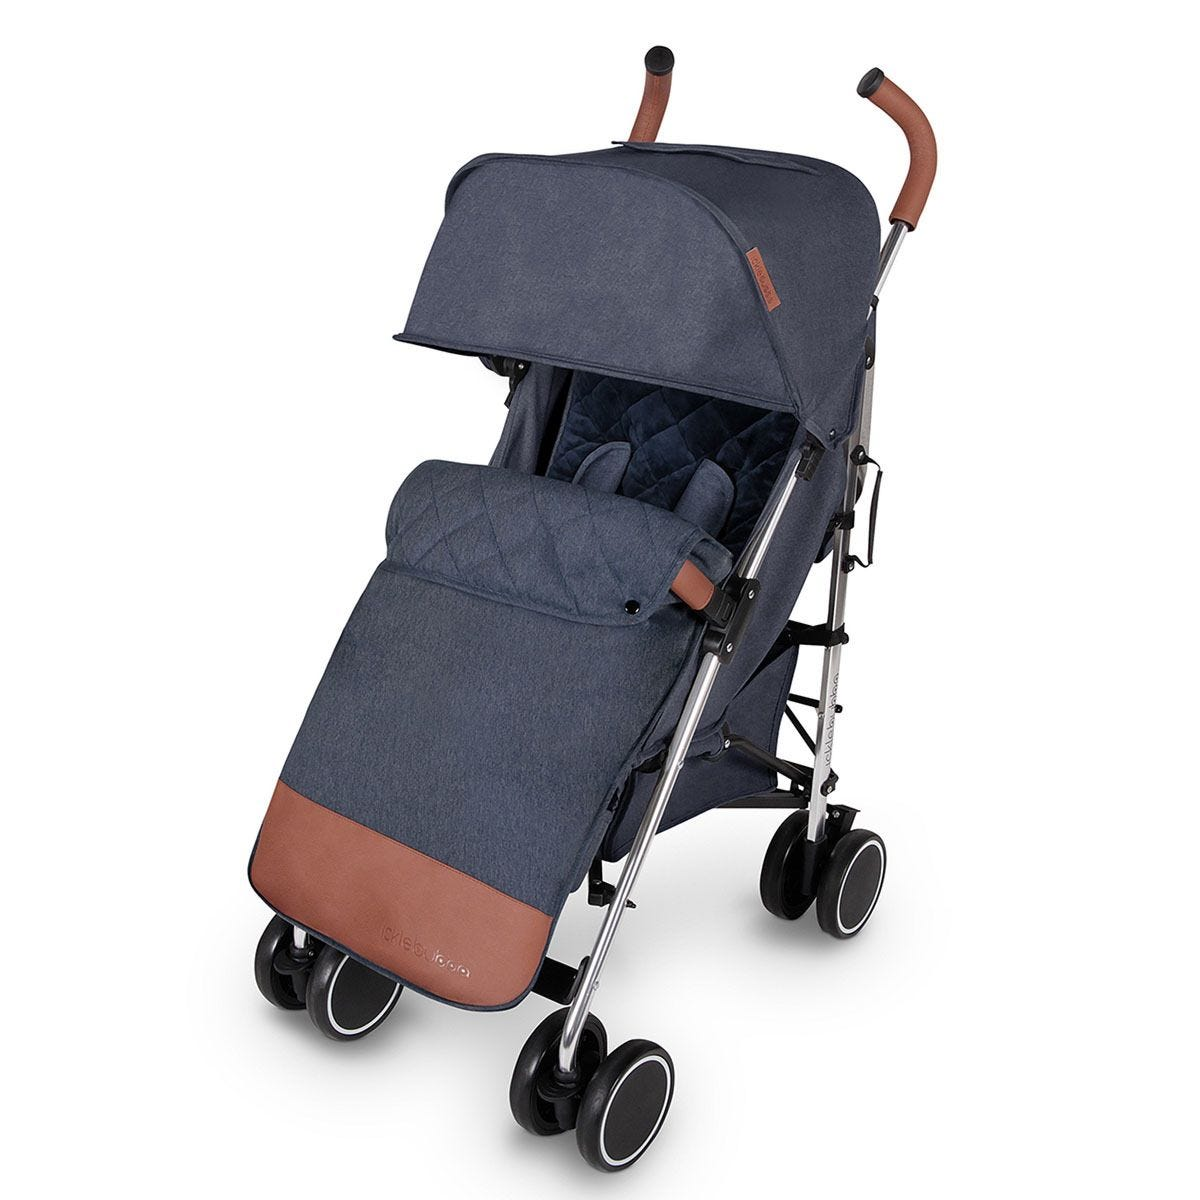 Ickle Bubba Discovery Max Stroller - Denim Blue on Silver